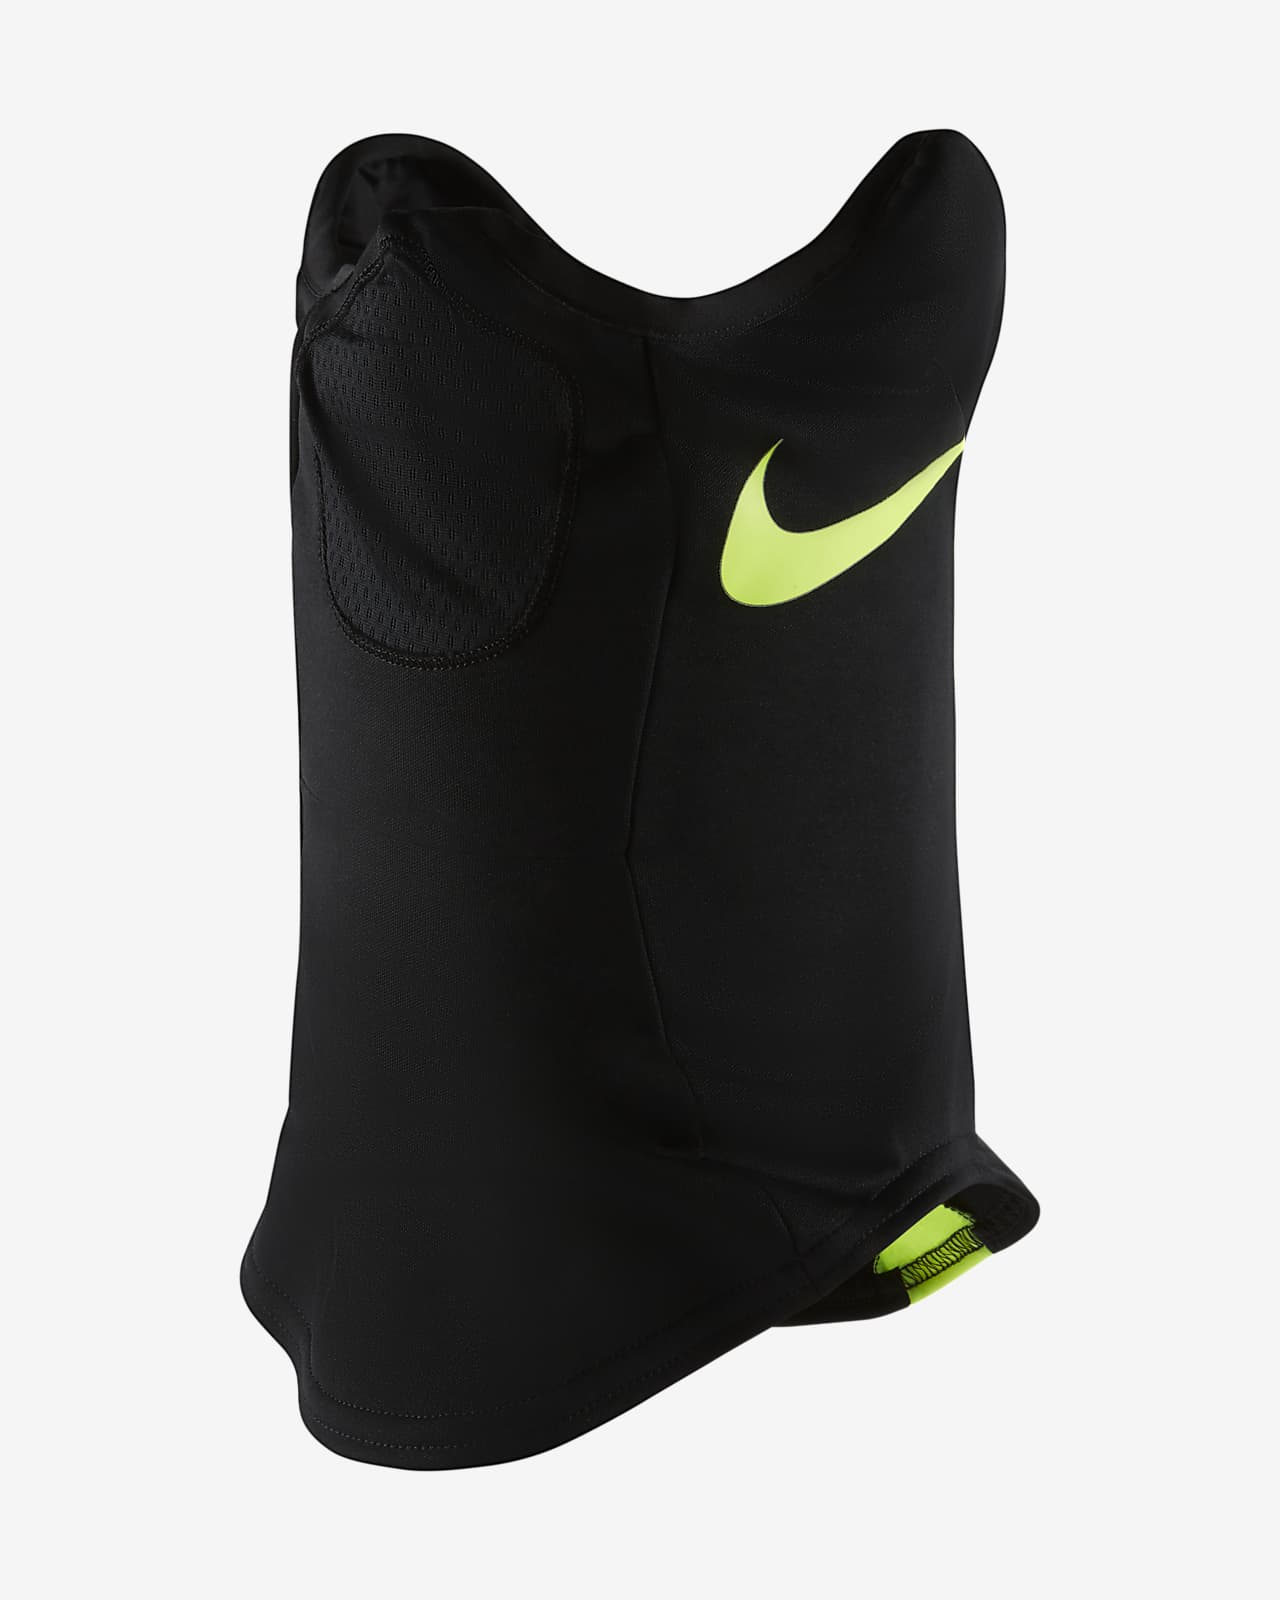 Cuello térmico Nike Strike Winter Warrior